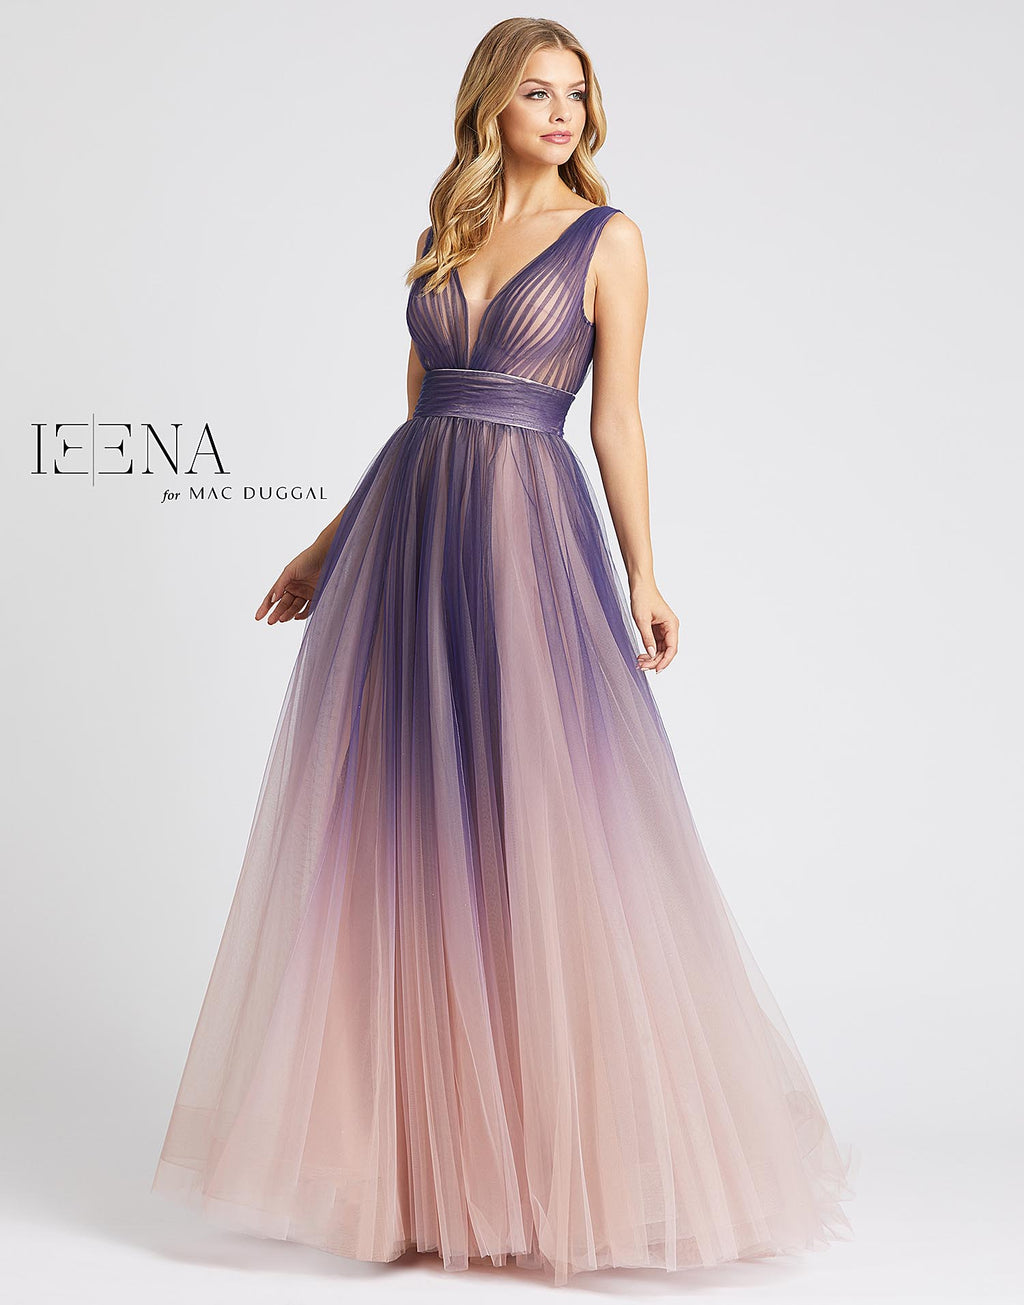 Ieena by Mac Duggal 20221i